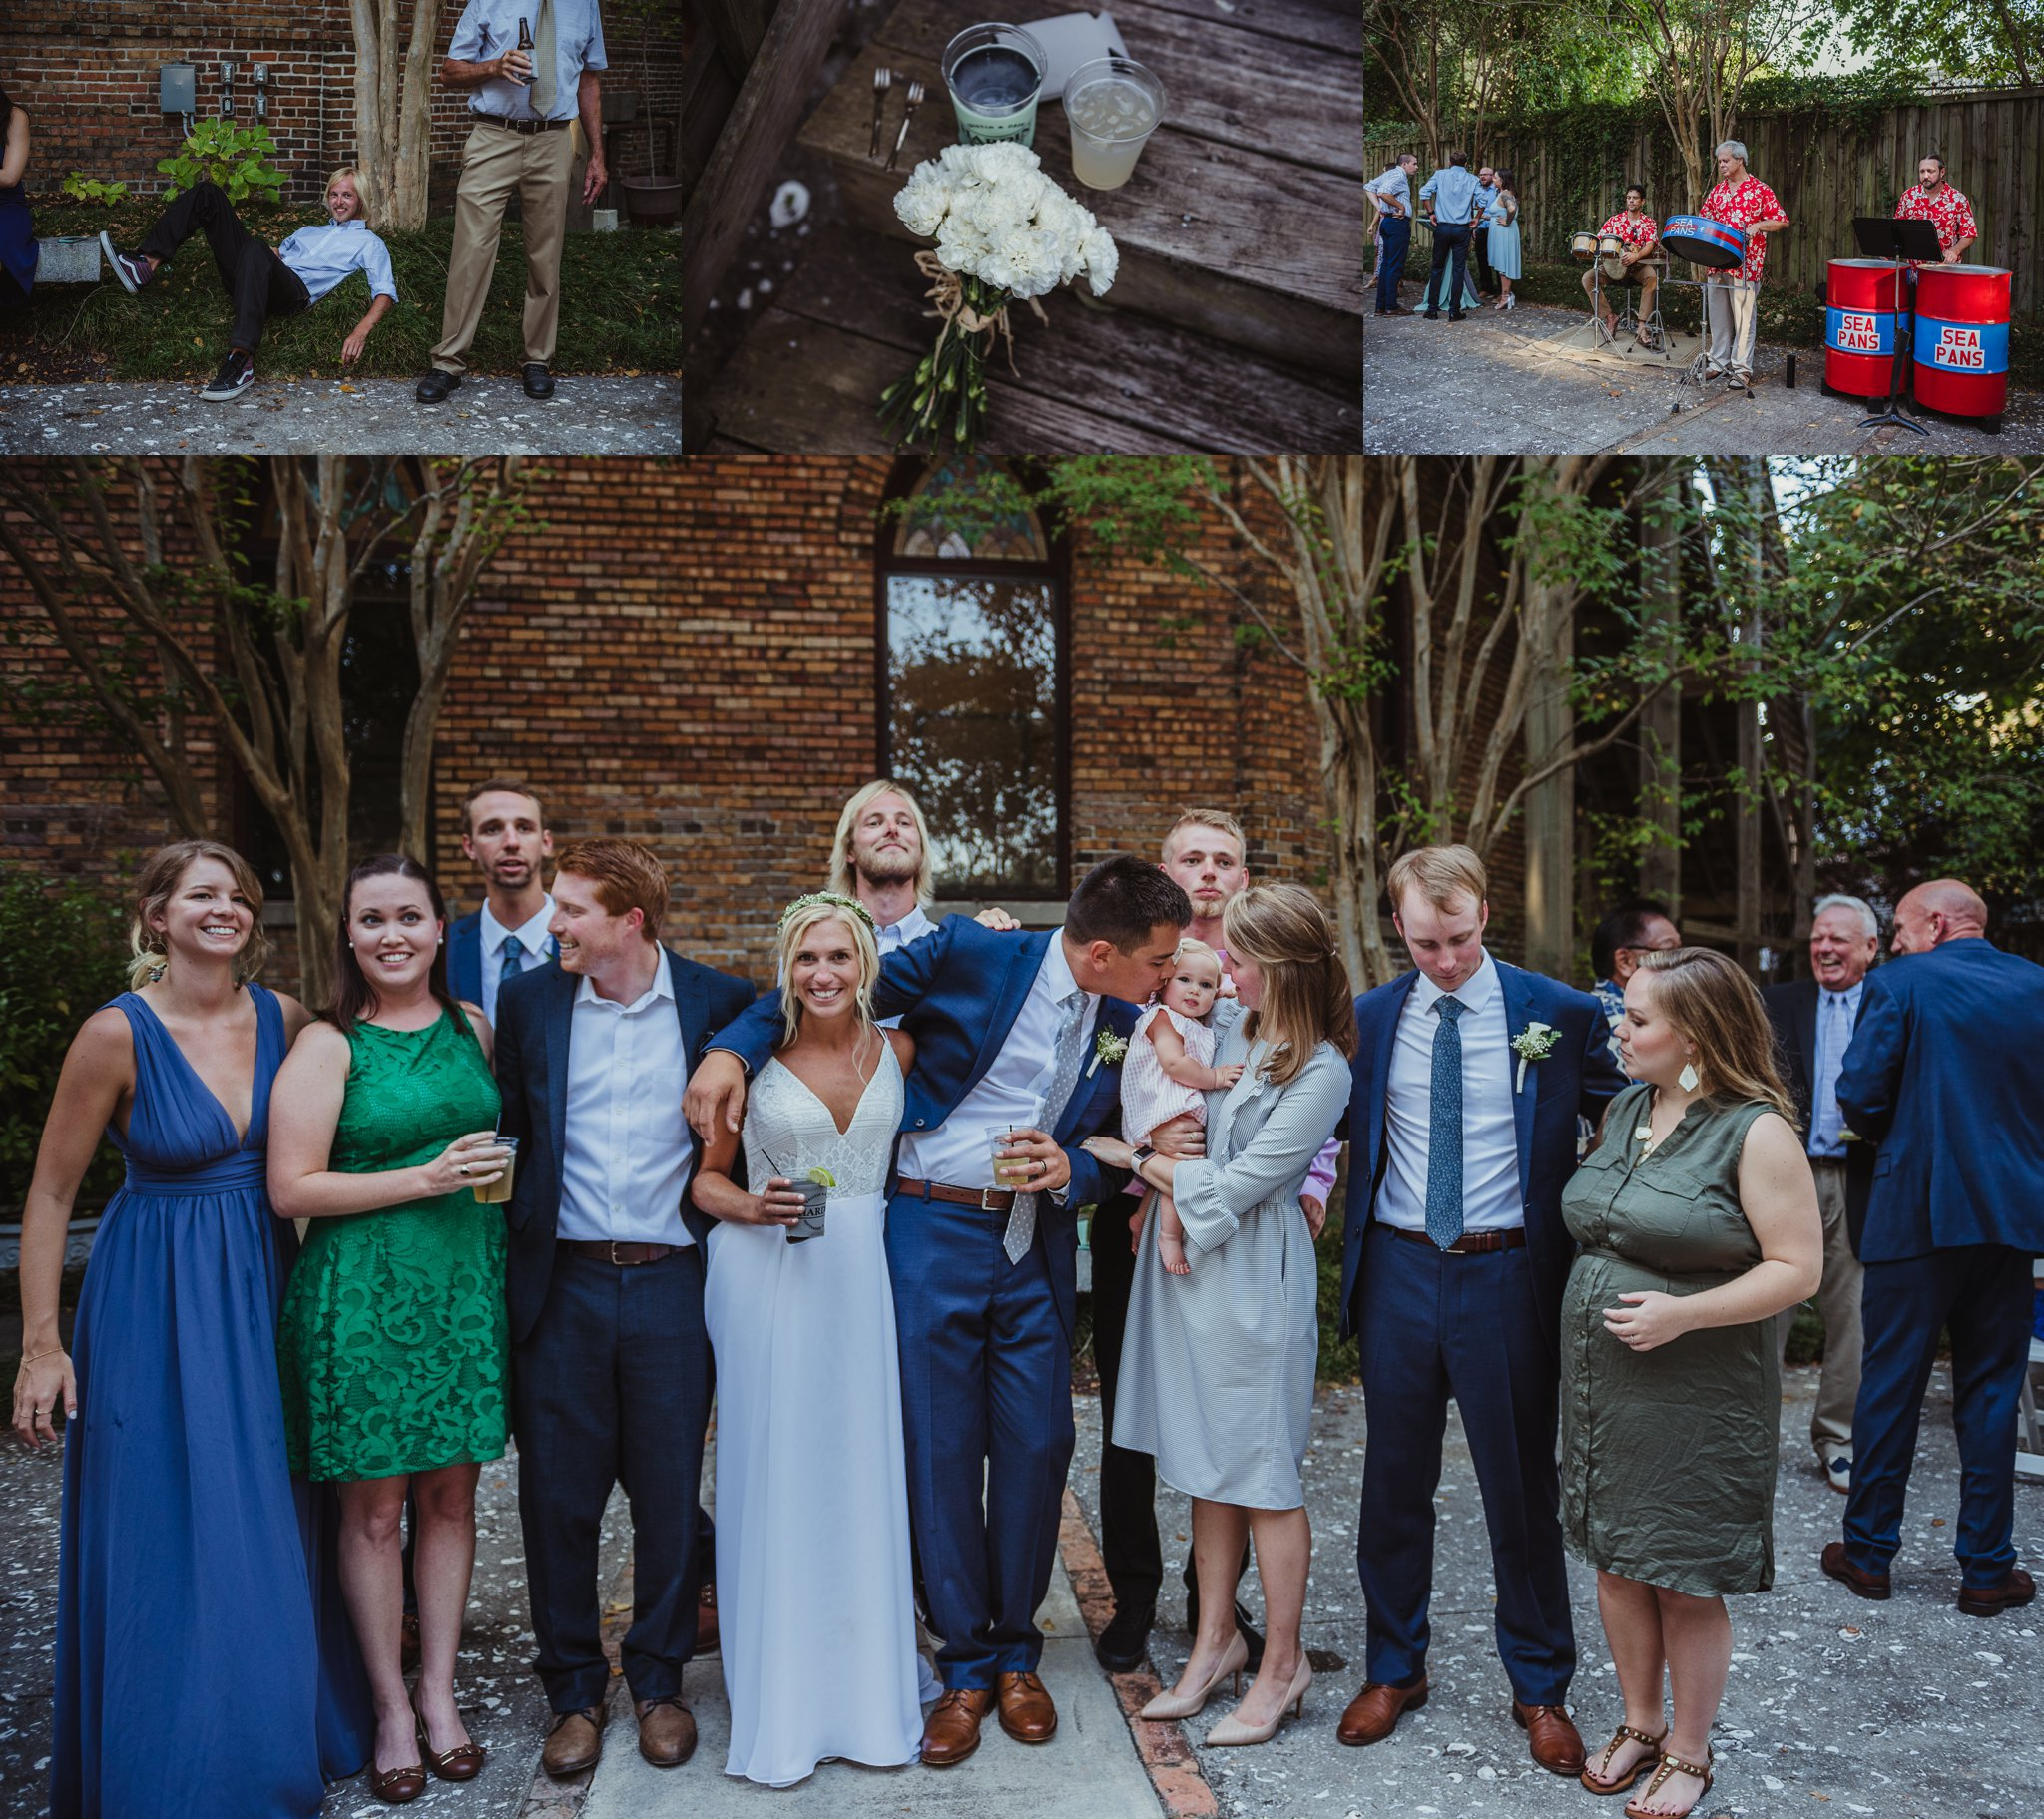 The bride and groom hang with guests and a steel drum band at their cocktail hour after their wedding ceremony in Wilmington, NC, photos by Rose Trail Images.